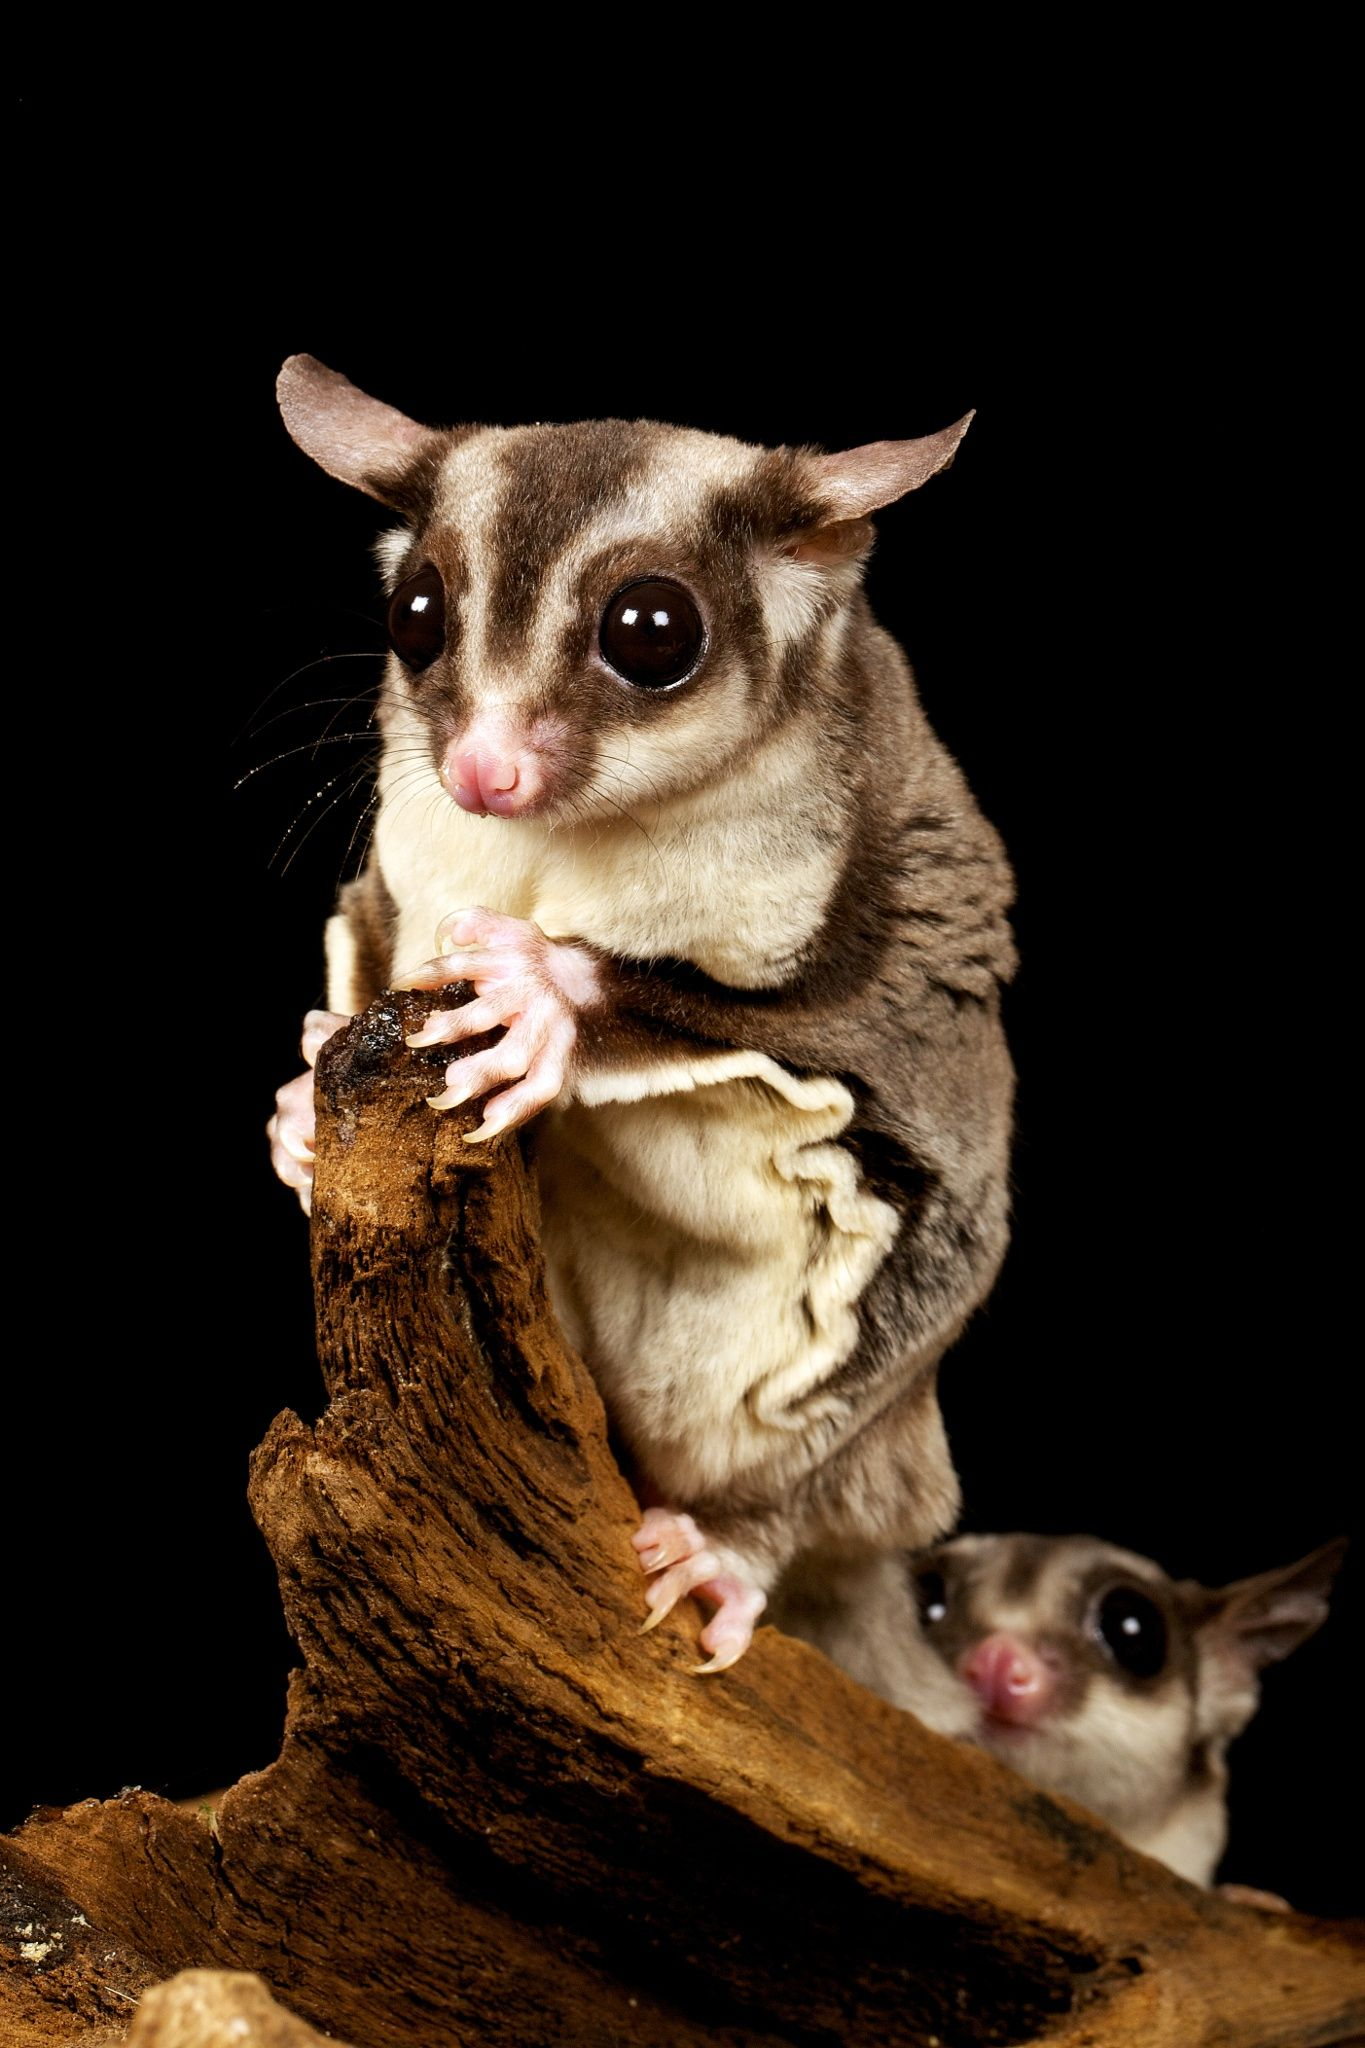 Two Sugar Gliders Animals Animal Pictures Cute Animals